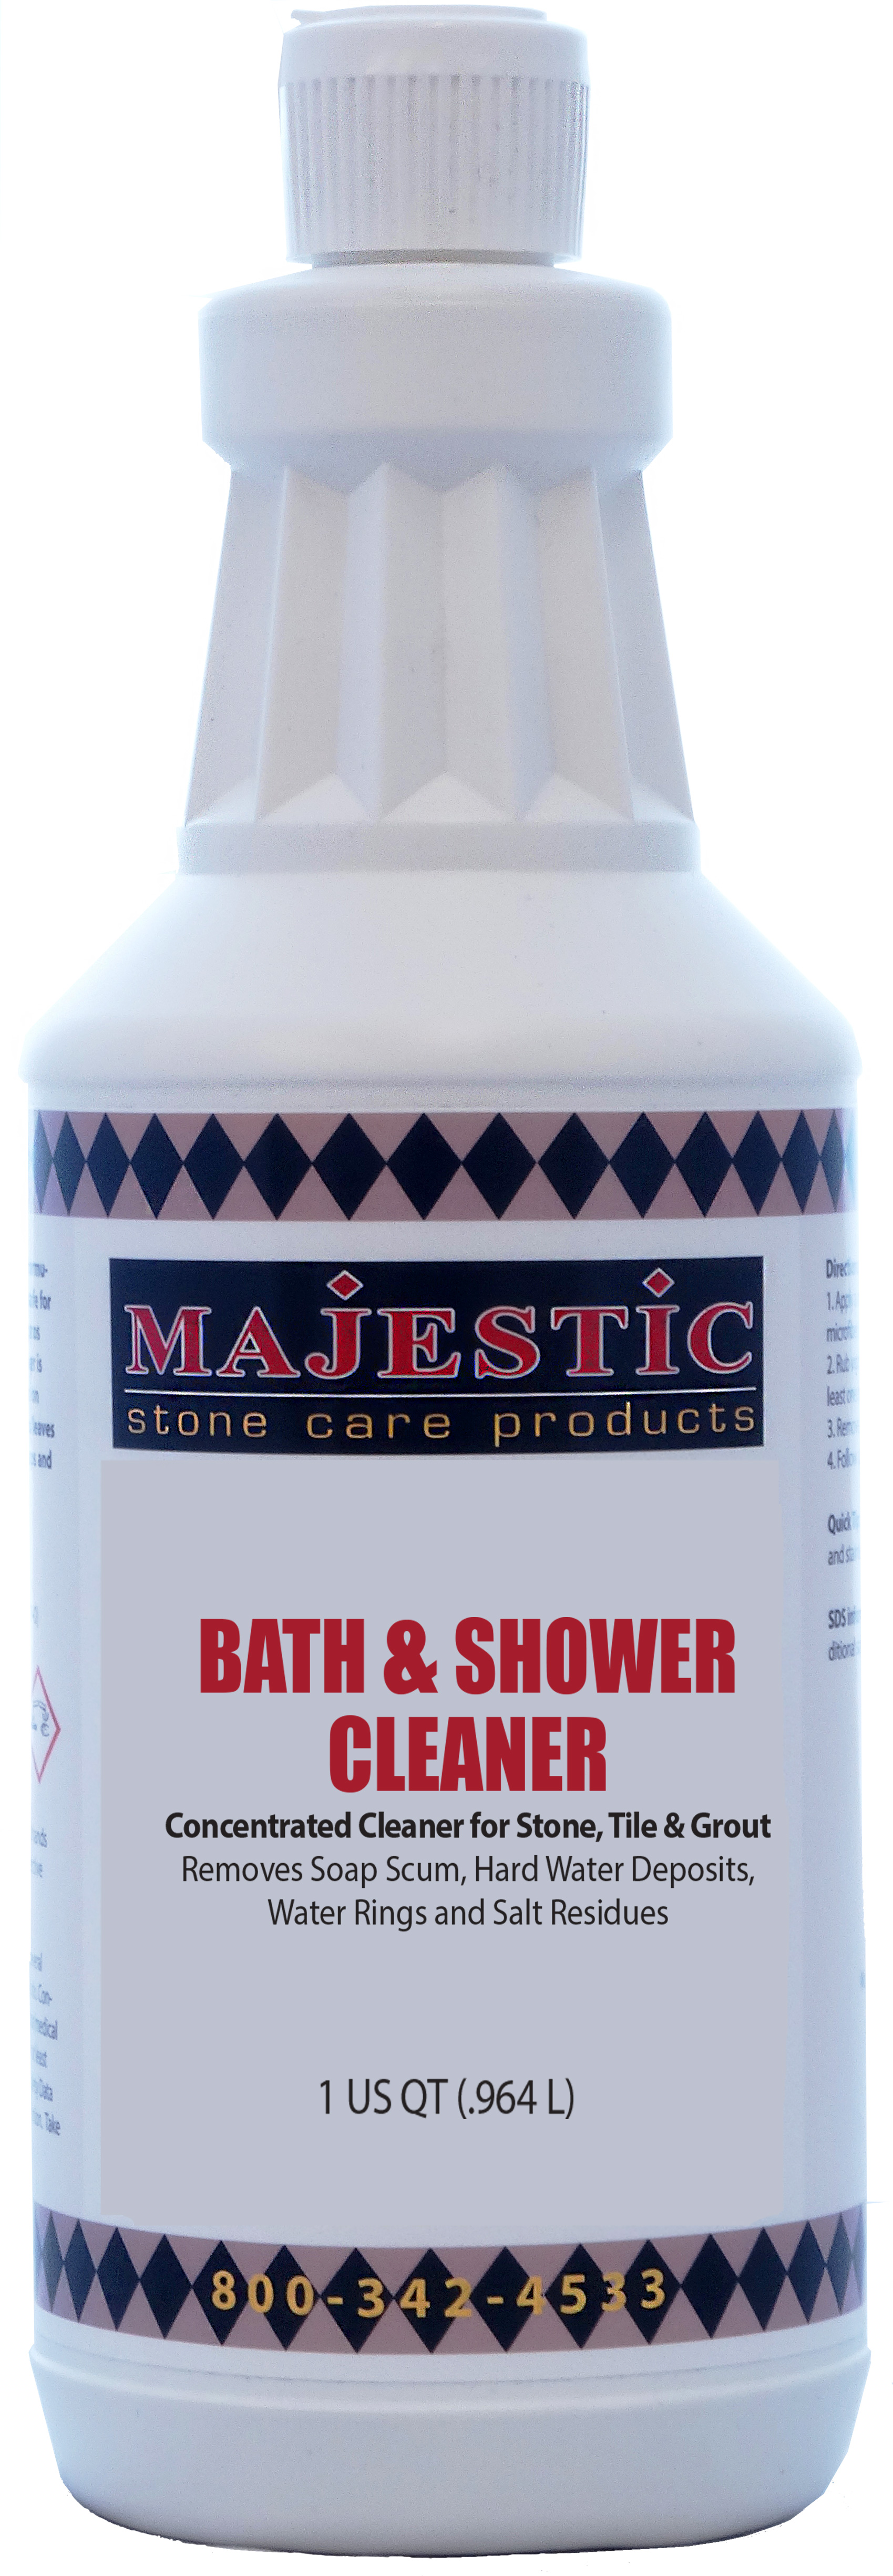 Bath & Shower Cleaner bath, shower, cleaner, clean, non-acid, build-up, buildup, soap, film, scum, residue, hard, water, deposits, showers, bath, bathroom, marble, limestone, travertine, onyx, granite, quartz, walls, floors, glass, acrylic, doors, care, products